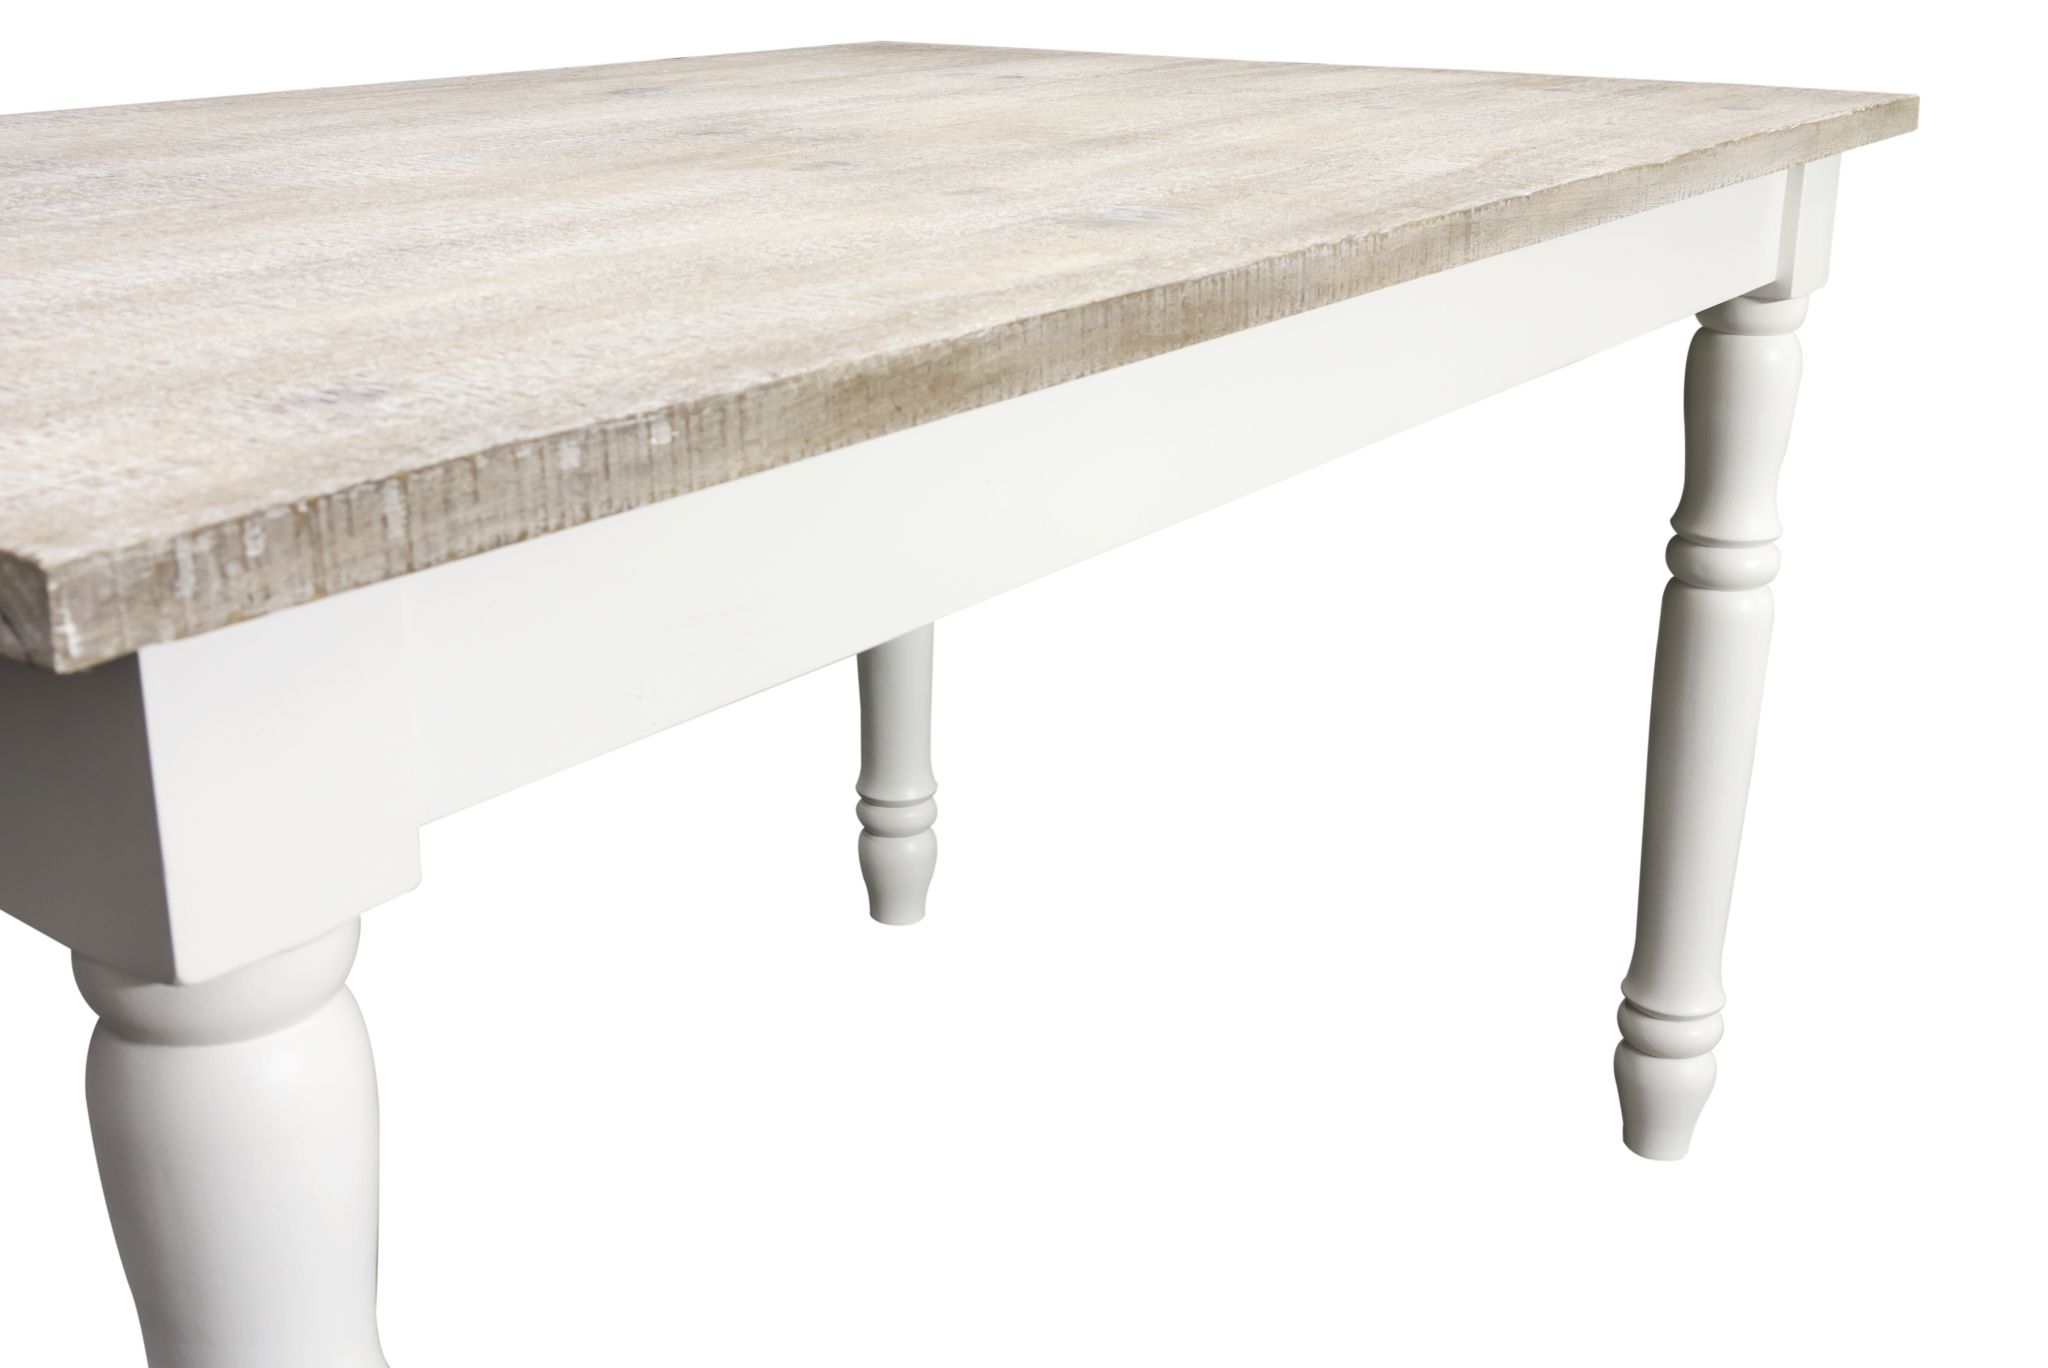 painted furniture shabby chic style dining shabby chic painted dining table and chairs bedroomlicious shabby chic bedrooms